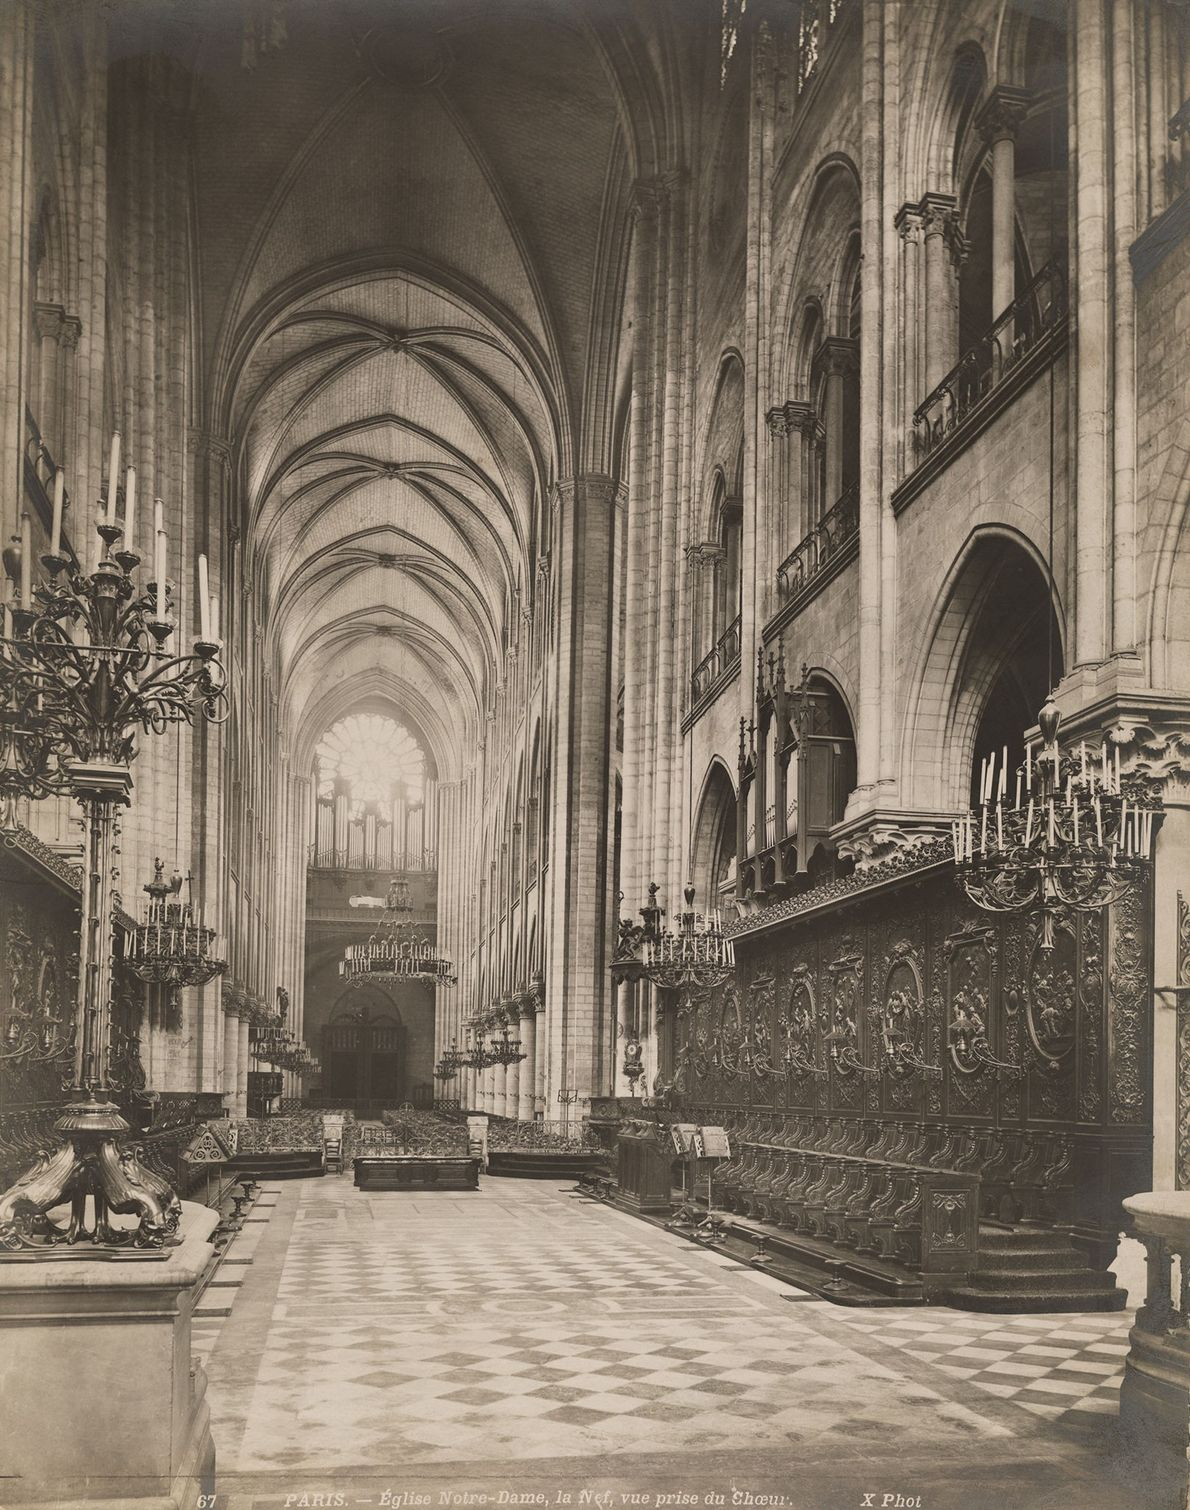 The wooden interior of Notre Dame is said to be destroyed by the recent fire.